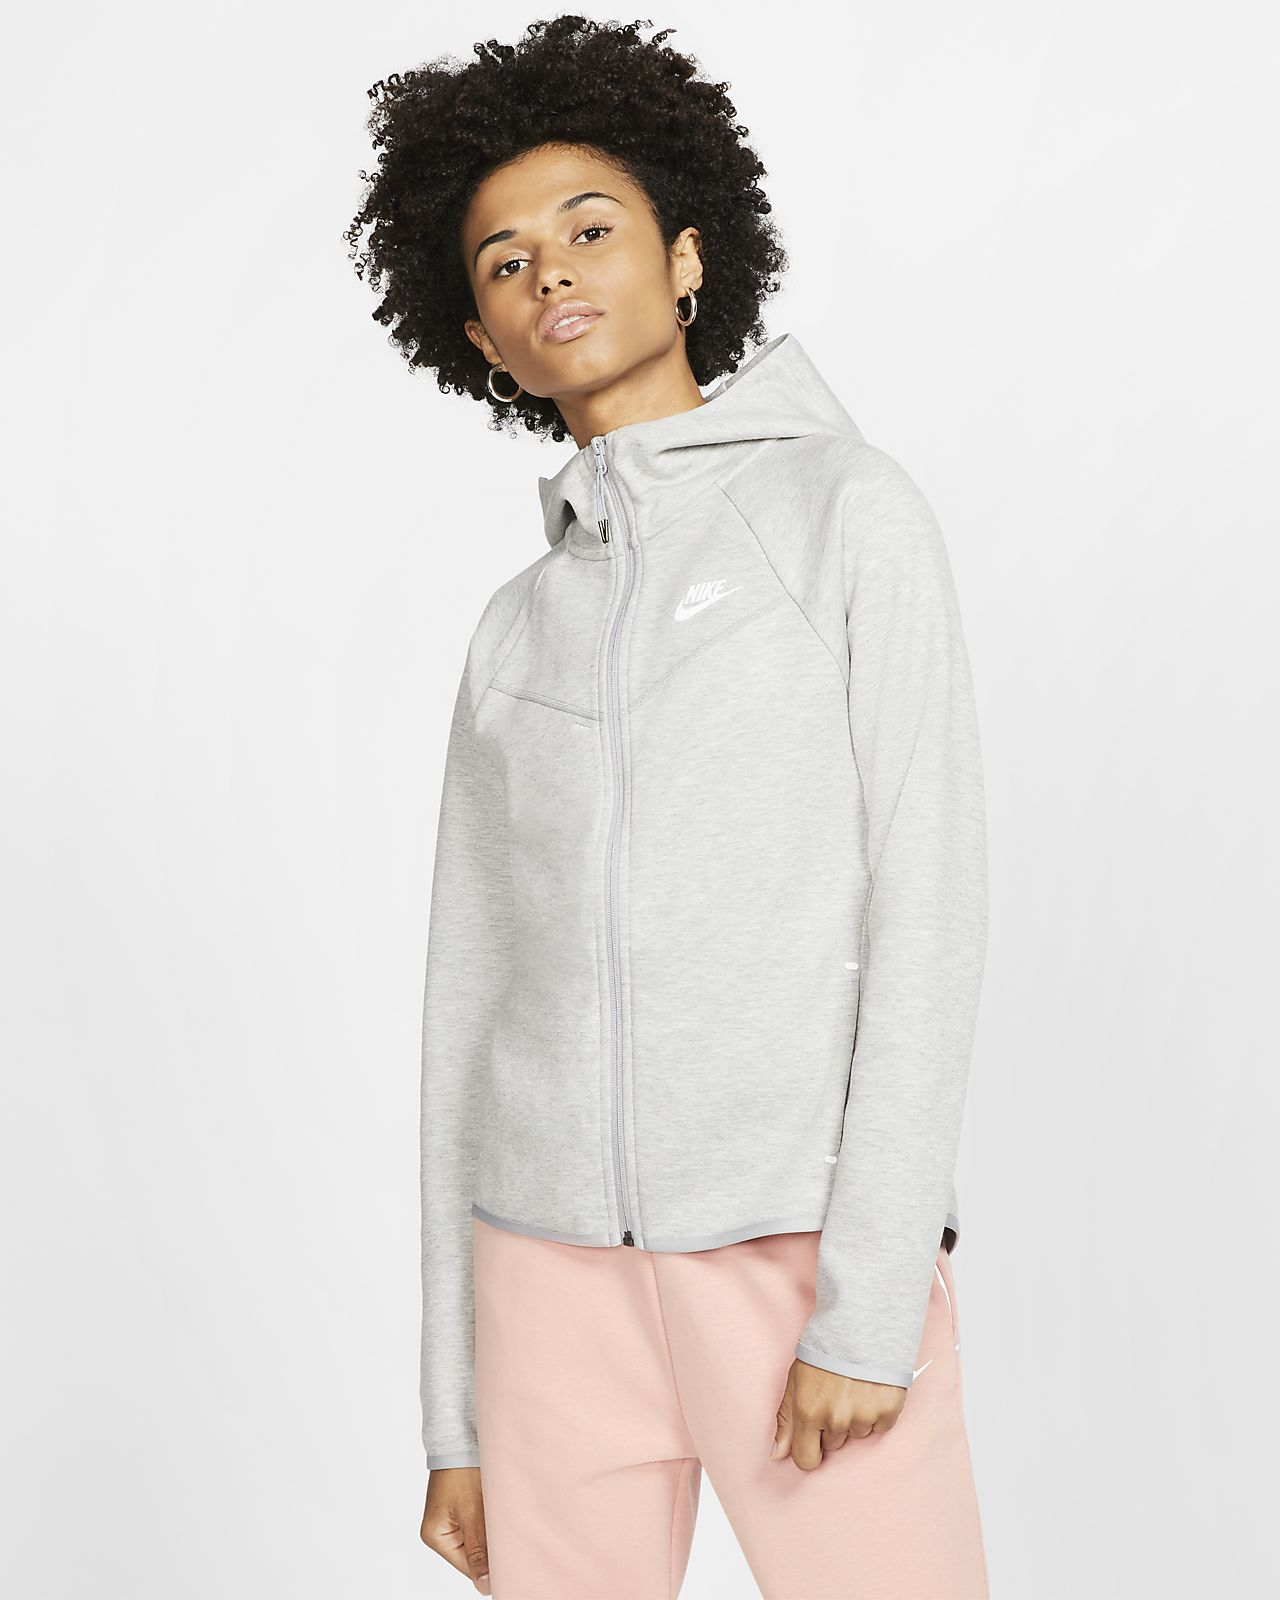 Nike Sportswear Windrunner Tech Fleece Women's Full-Zip Hoodie